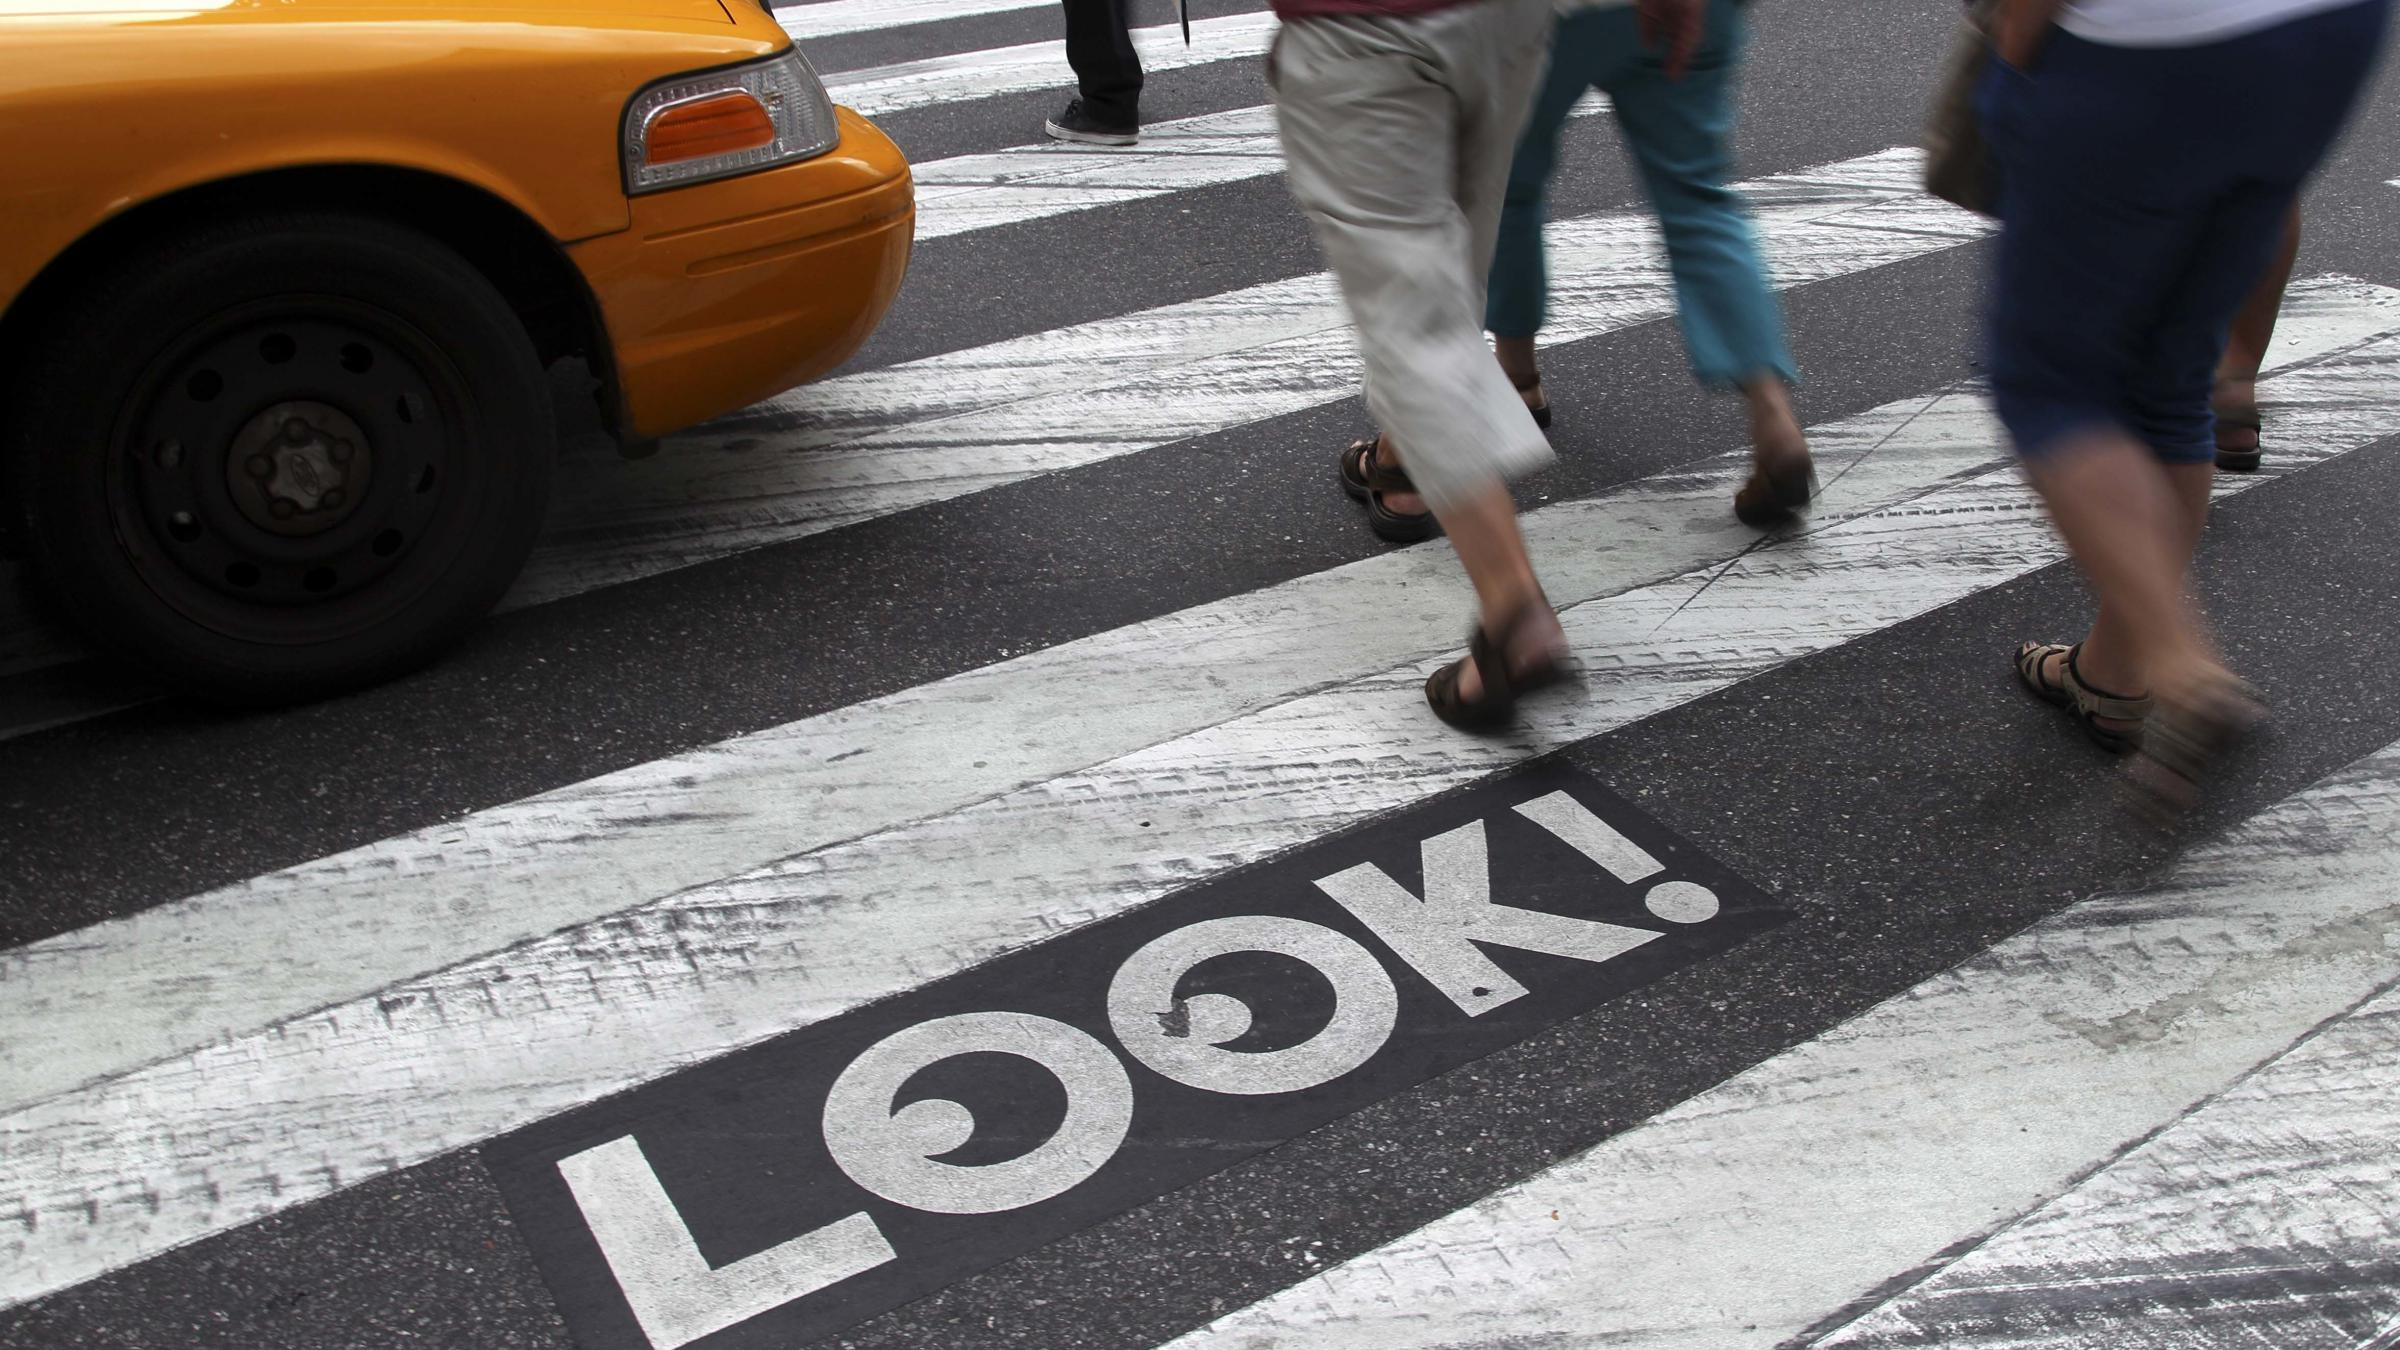 Honolulu 1st United States city to ban pedestrian texting while crossing the street